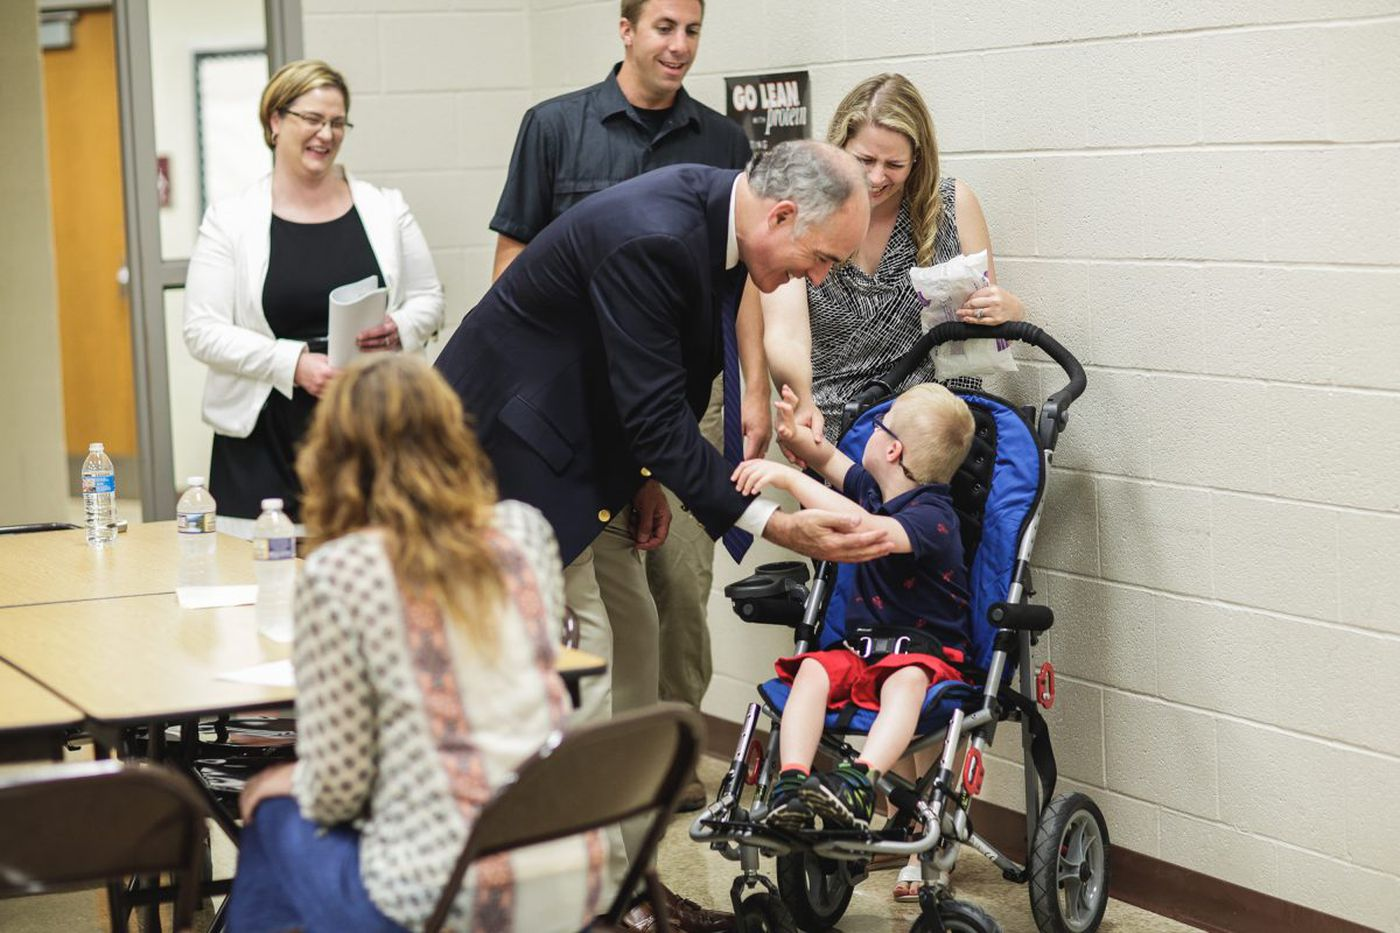 Let's lower the barriers for young people with disabilities | Sen. Bob Casey